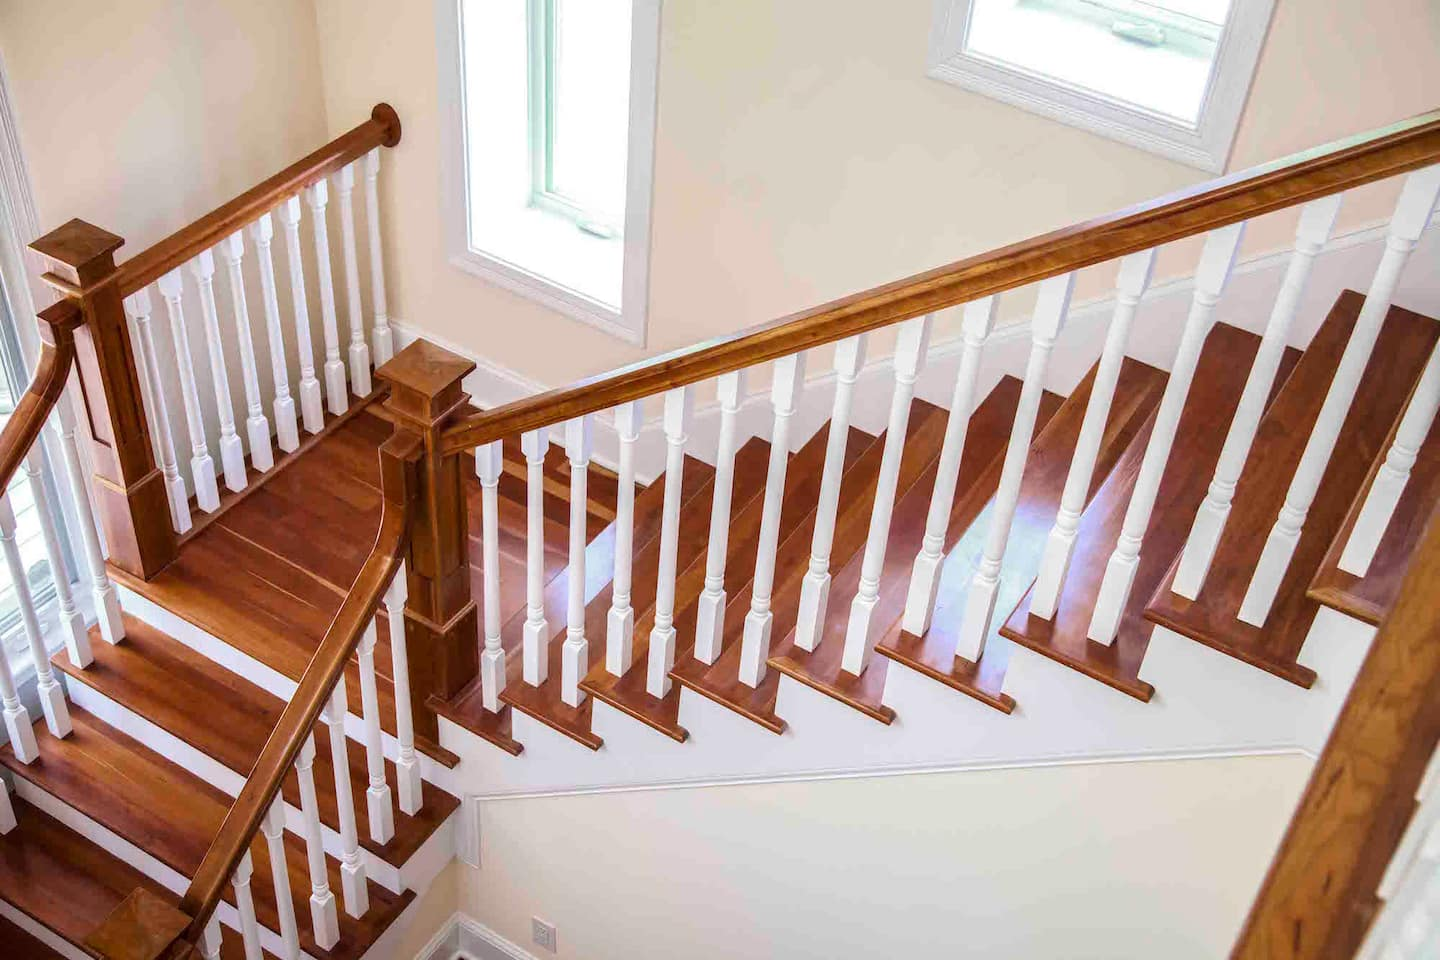 indoor railing kits for stairs railing stairs and.htm how to refinish indoor stair railings angie s list  how to refinish indoor stair railings